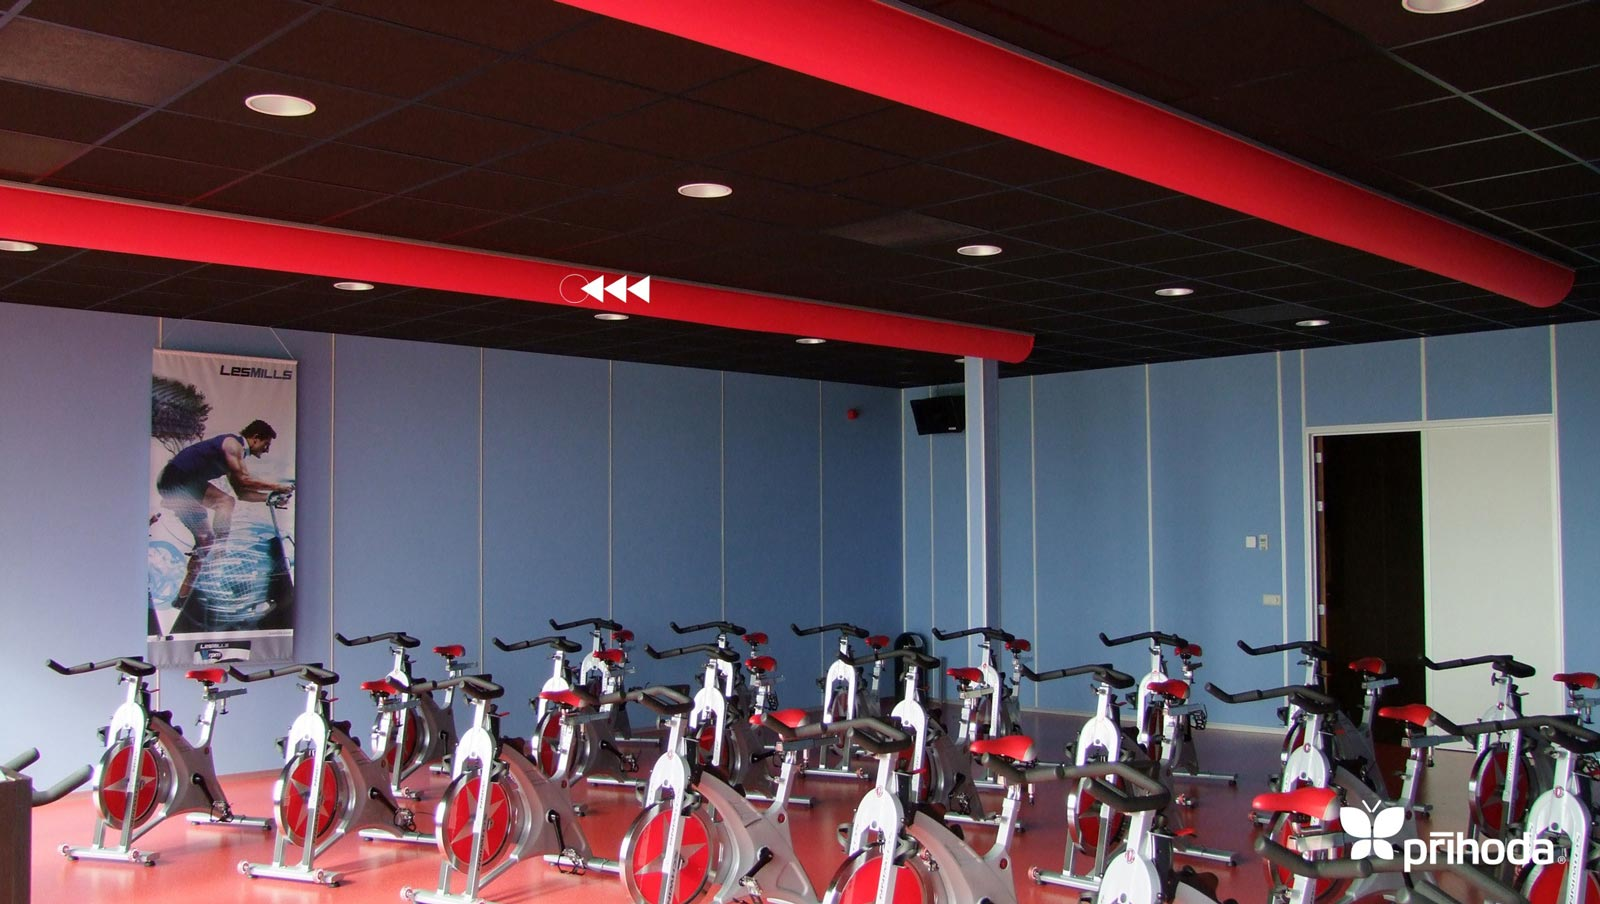 cycling gym red fabric ducts